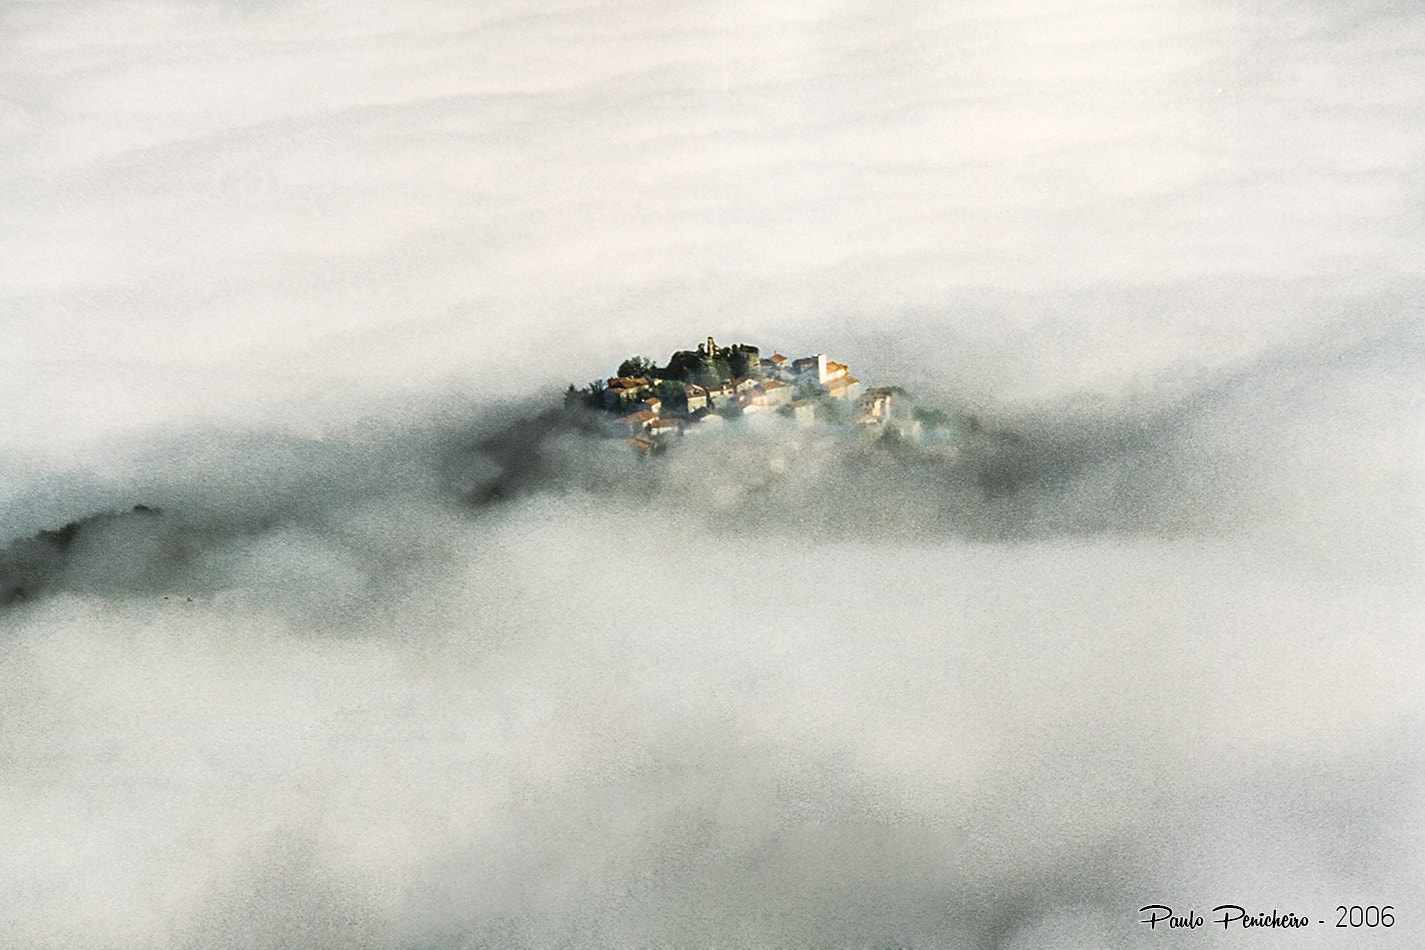 Photograph In The Clouds by Paulo Penicheiro on 500px